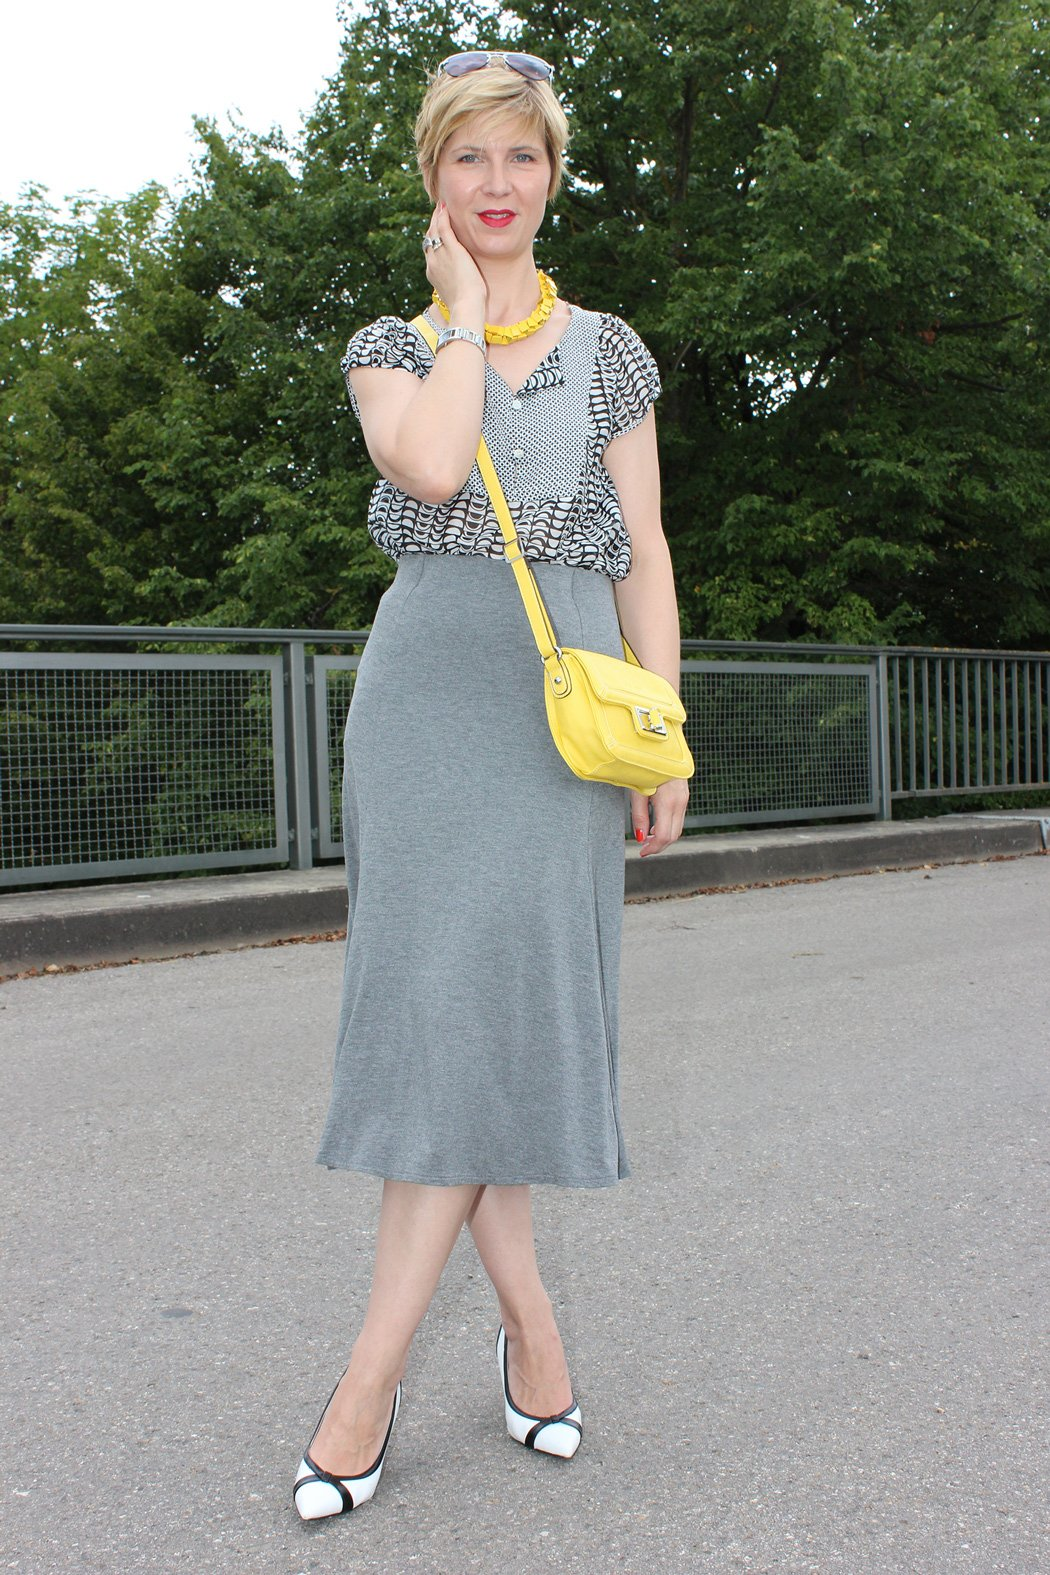 IMG_9731agrey_midiskirt_skirt_silkblouse_pumps_blackandwhite_hundm_yellow_gelb_accessoires_bag_necklace